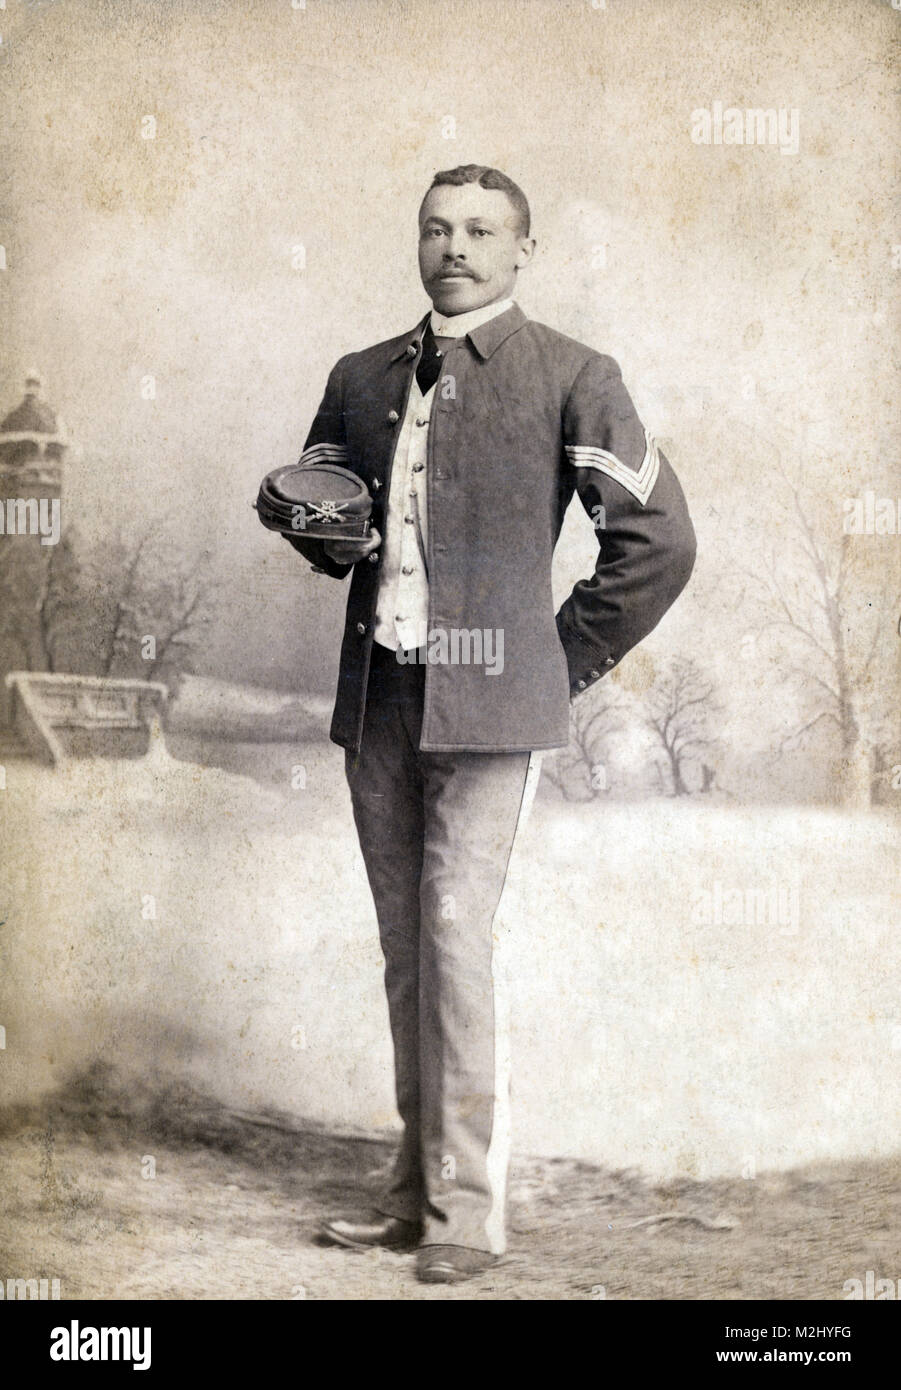 Buffalo Soldier, 25th Infantry Regiment, 1880s - Stock Image